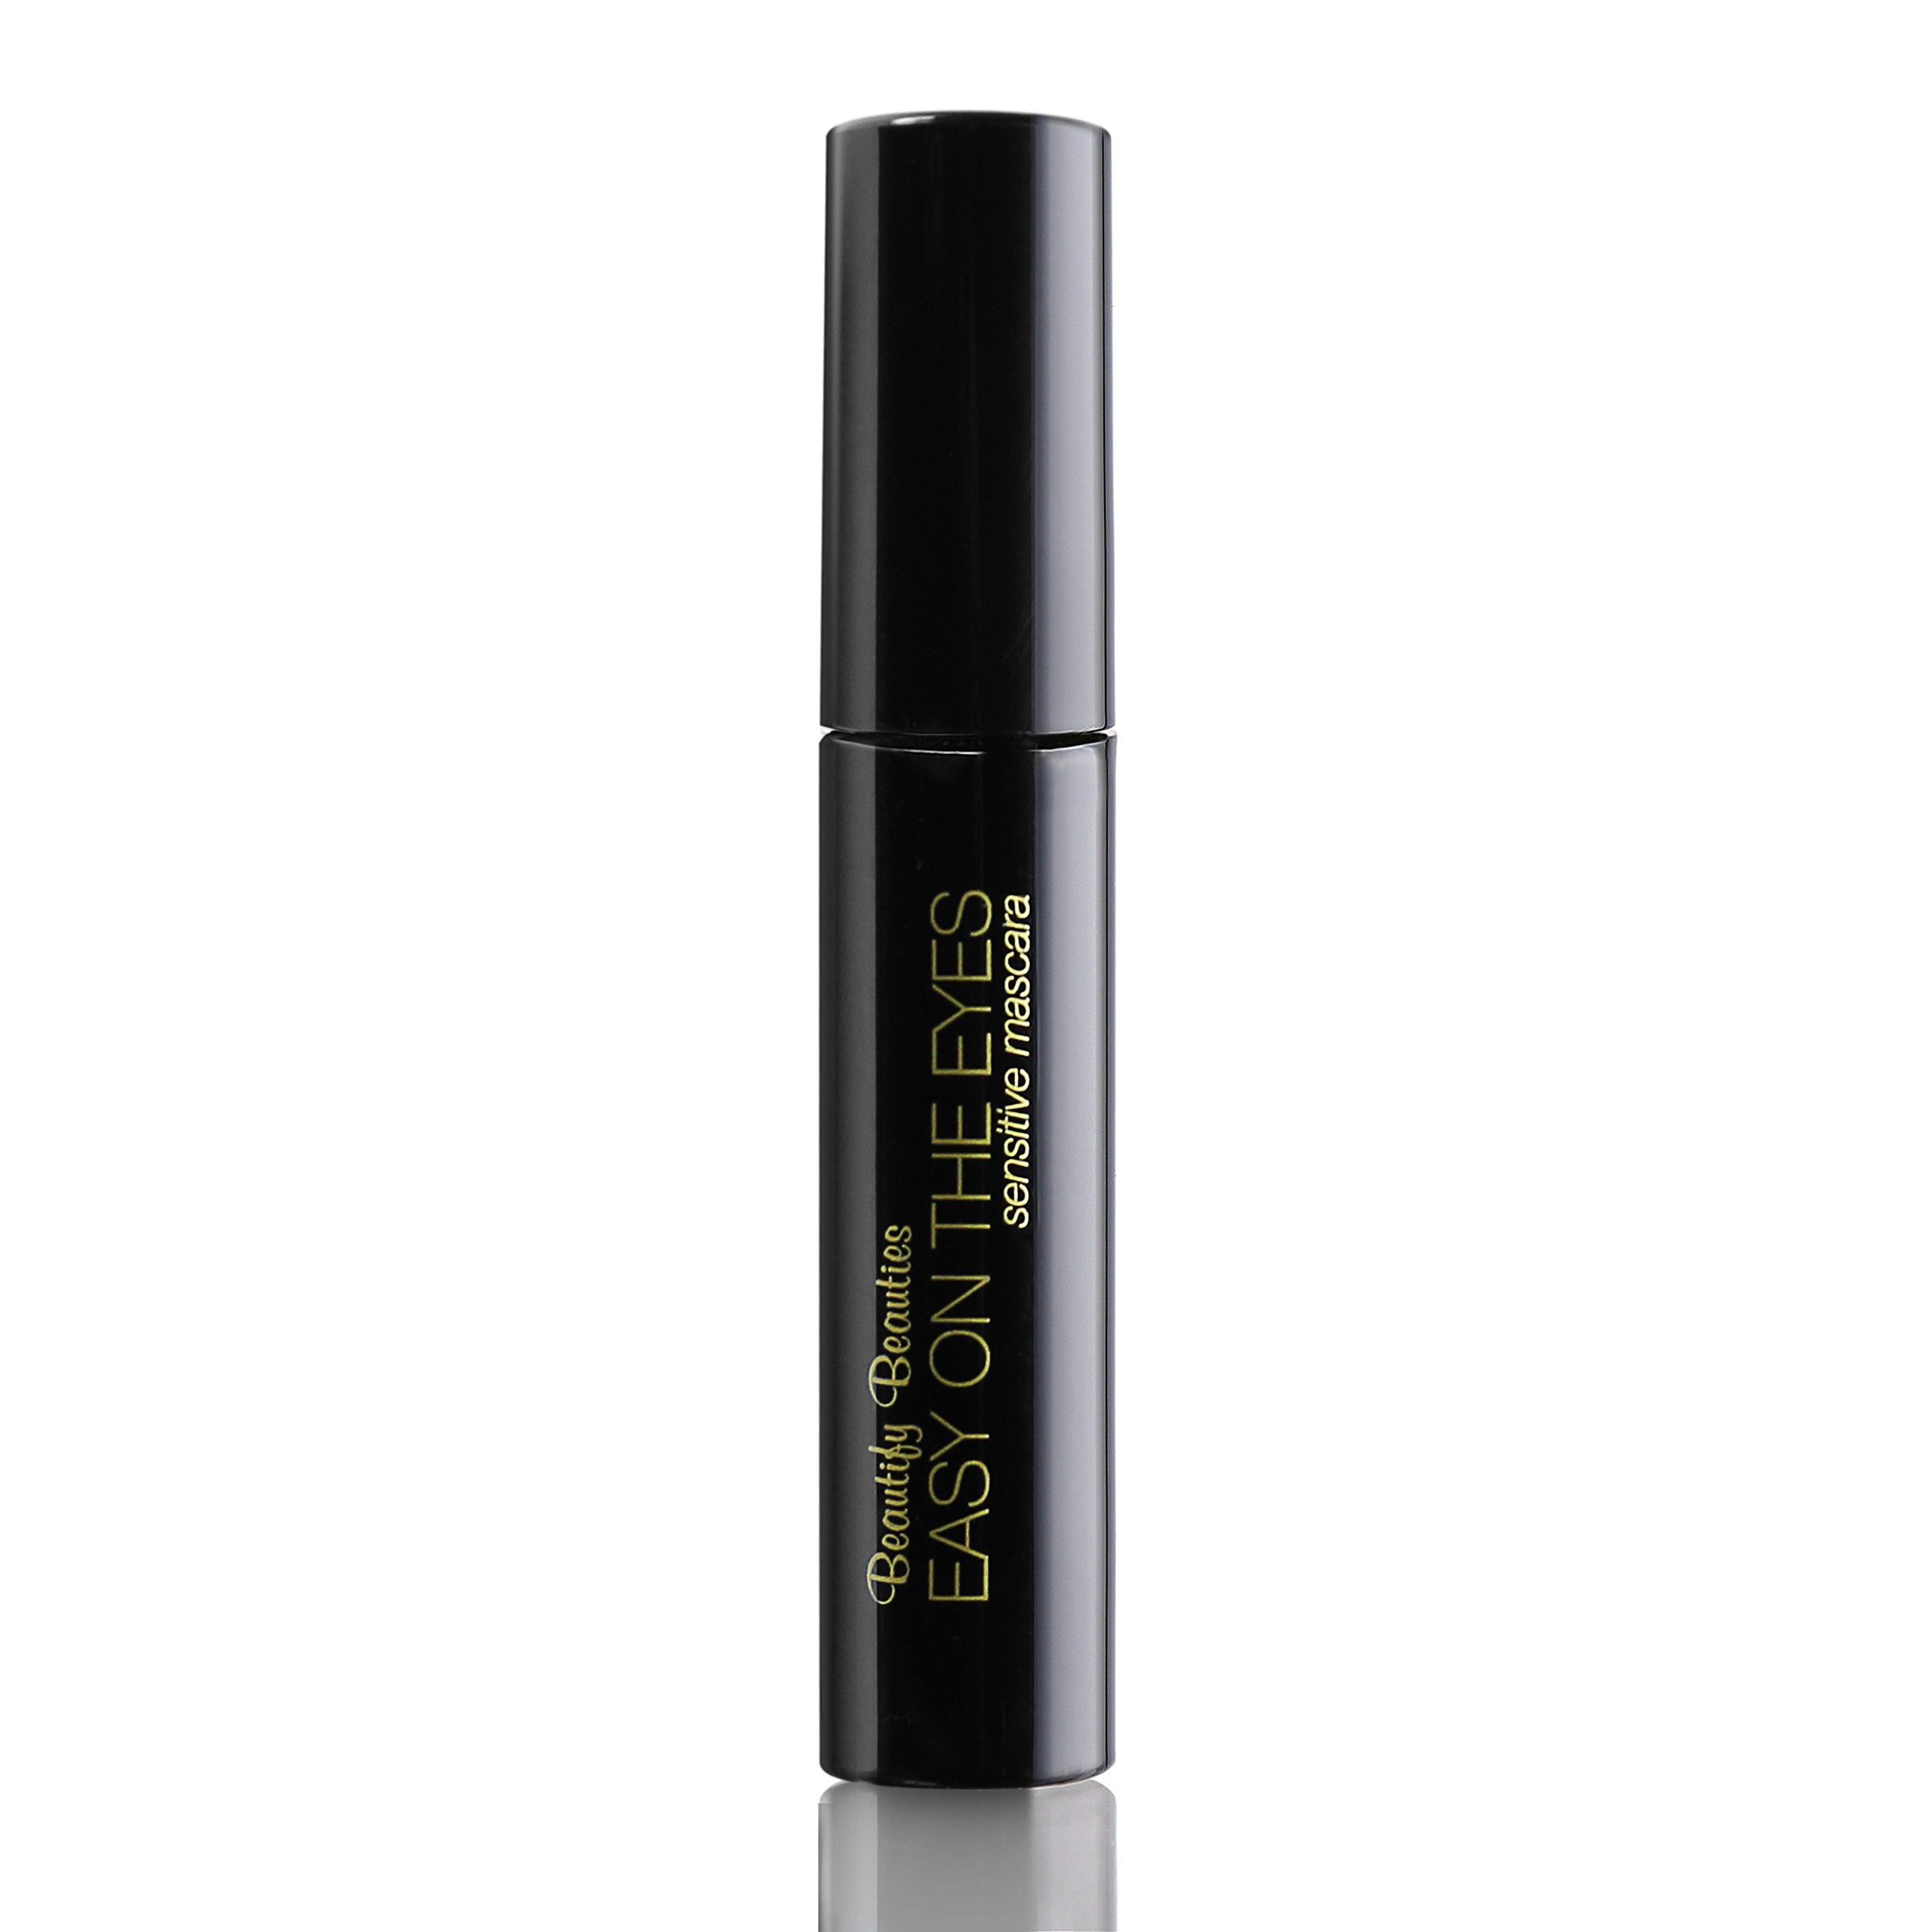 EASY ON THE EYES Sensitive Eye Mascara, Black (0.35 oz) By Beautify Beauties. Gives You Natural Looking Lashes. Non irritating, Great for Sensitive Eyes, Fragrance-free